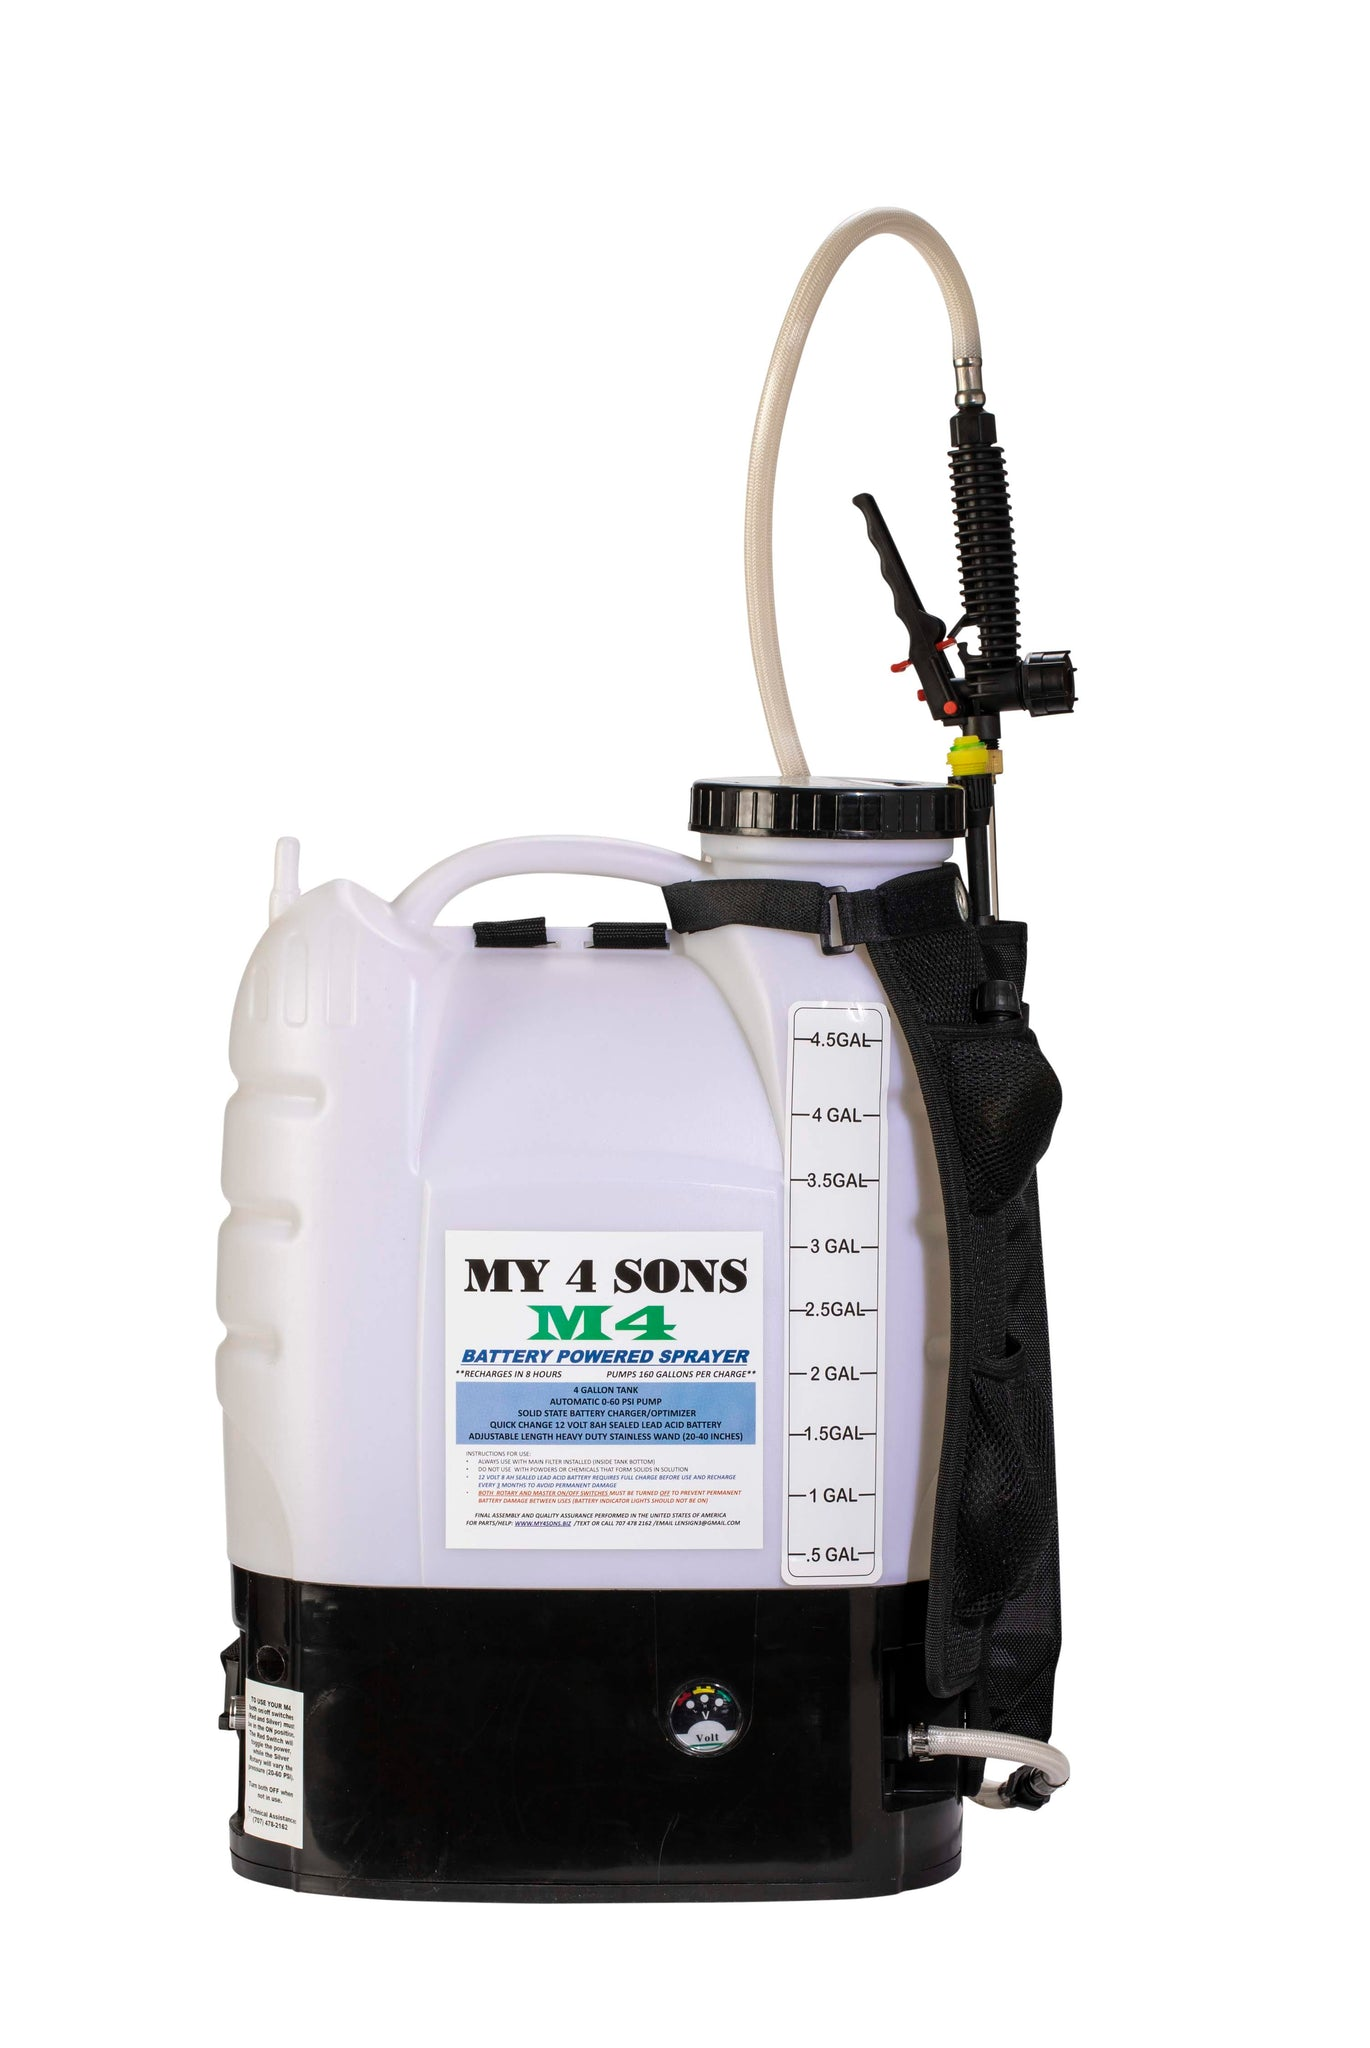 #1 Rated M4 Battery Powered Backpack Sprayer $199.99 (Free Same Day UPS 3-5 Day Shipping) Exclusively sold in the United States **23,000 Sold**